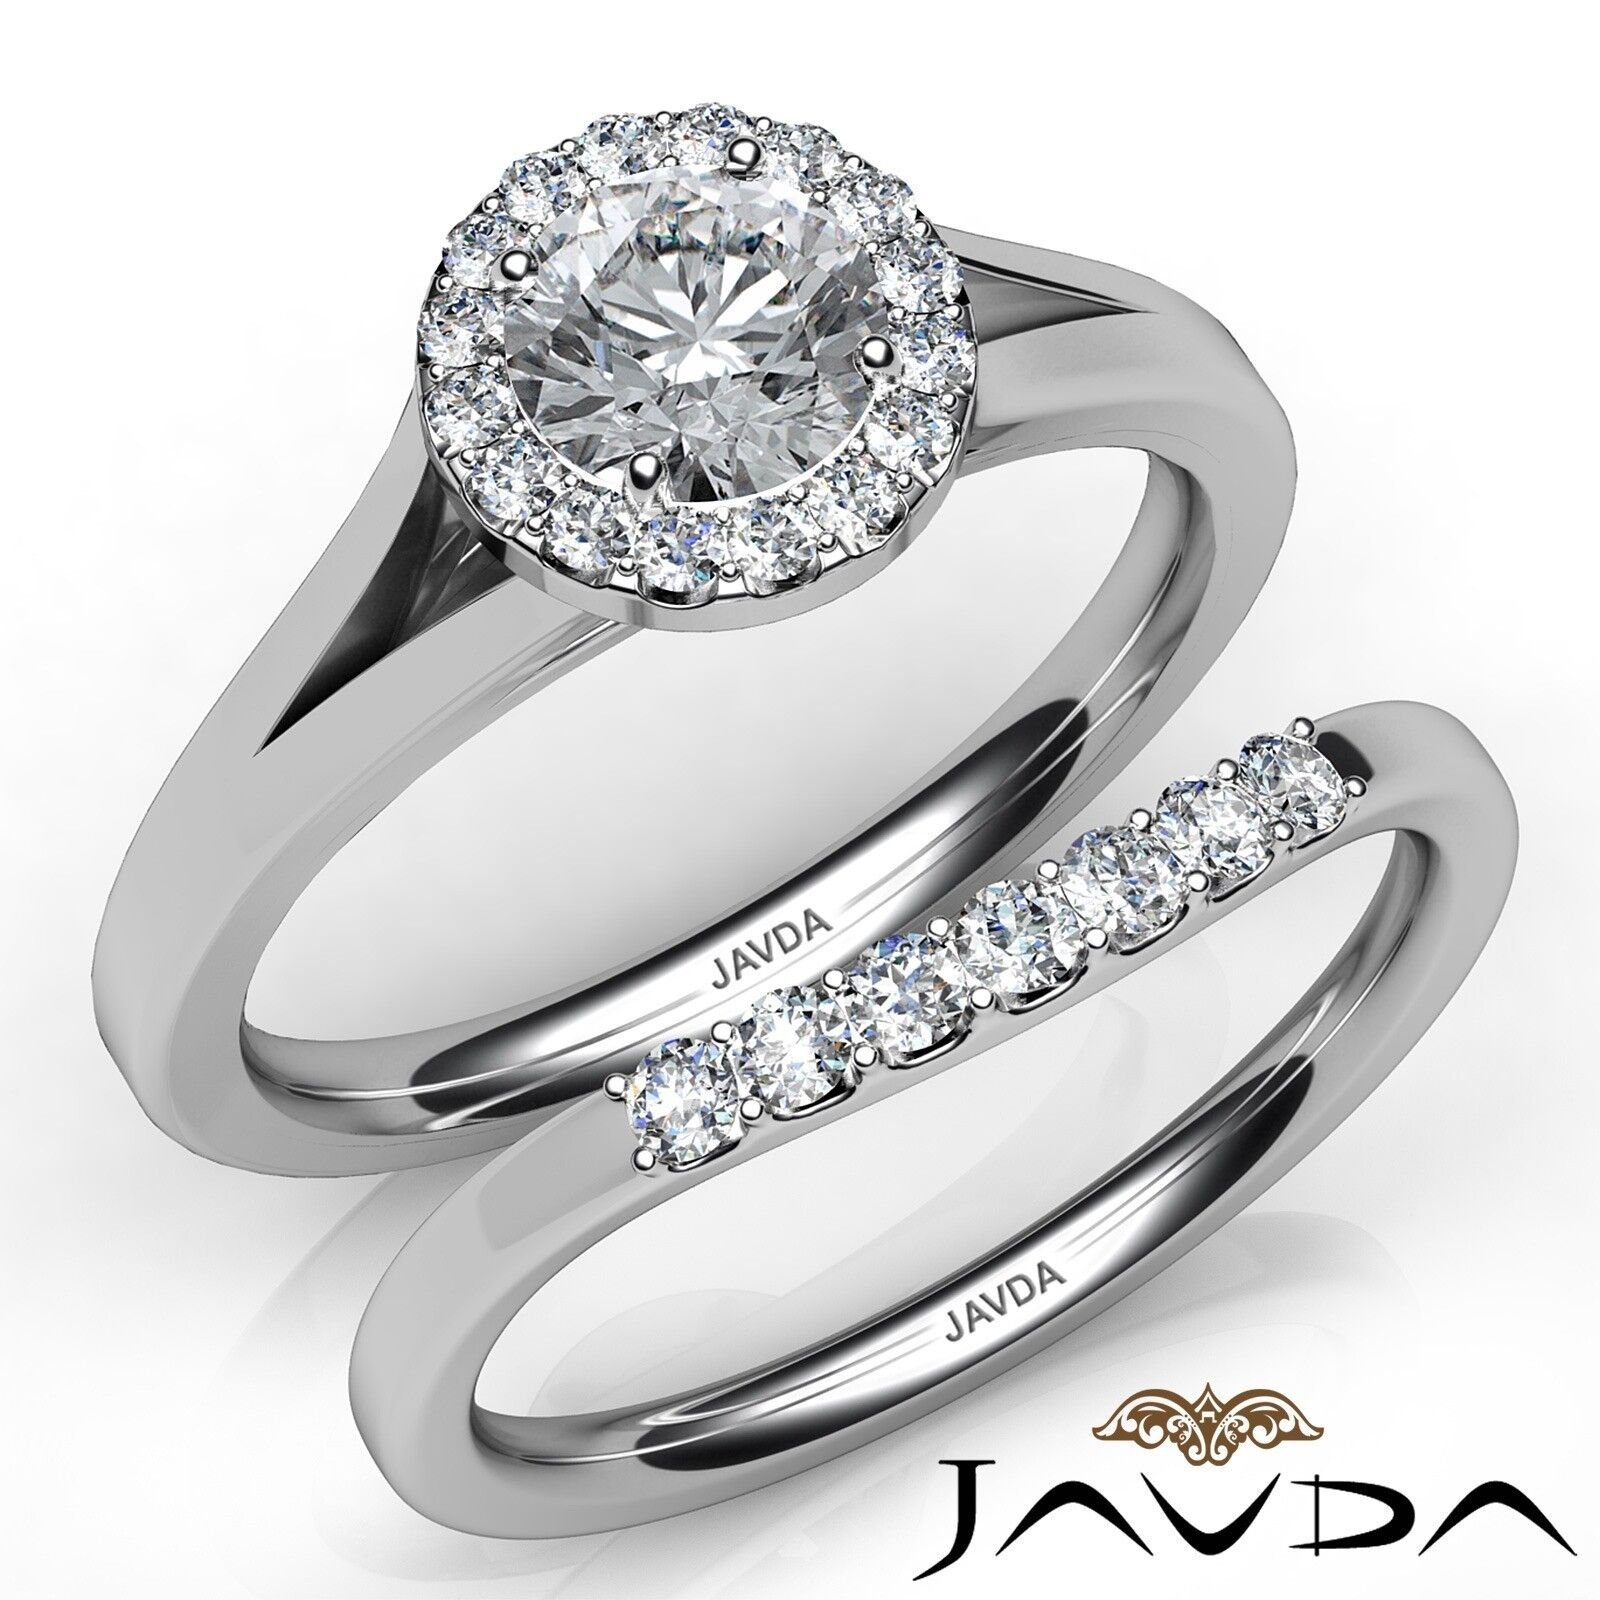 0.92ctw Classic Bridal Halo Pave Round Diamond Engagement Ring GIA G-VS2 W Gold